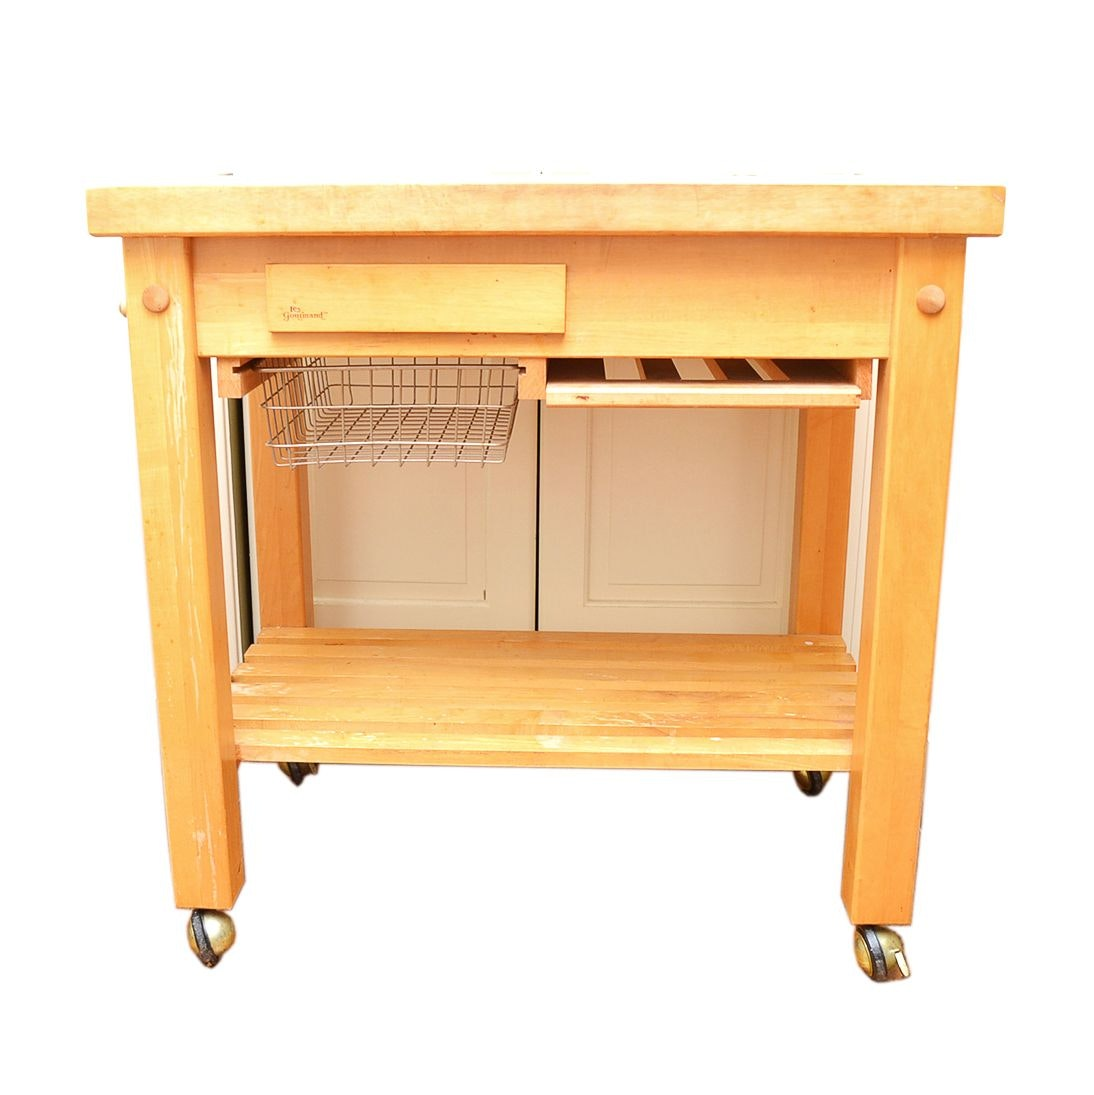 Maple Butcher Block Kitchen Island By Le Gourmand ...